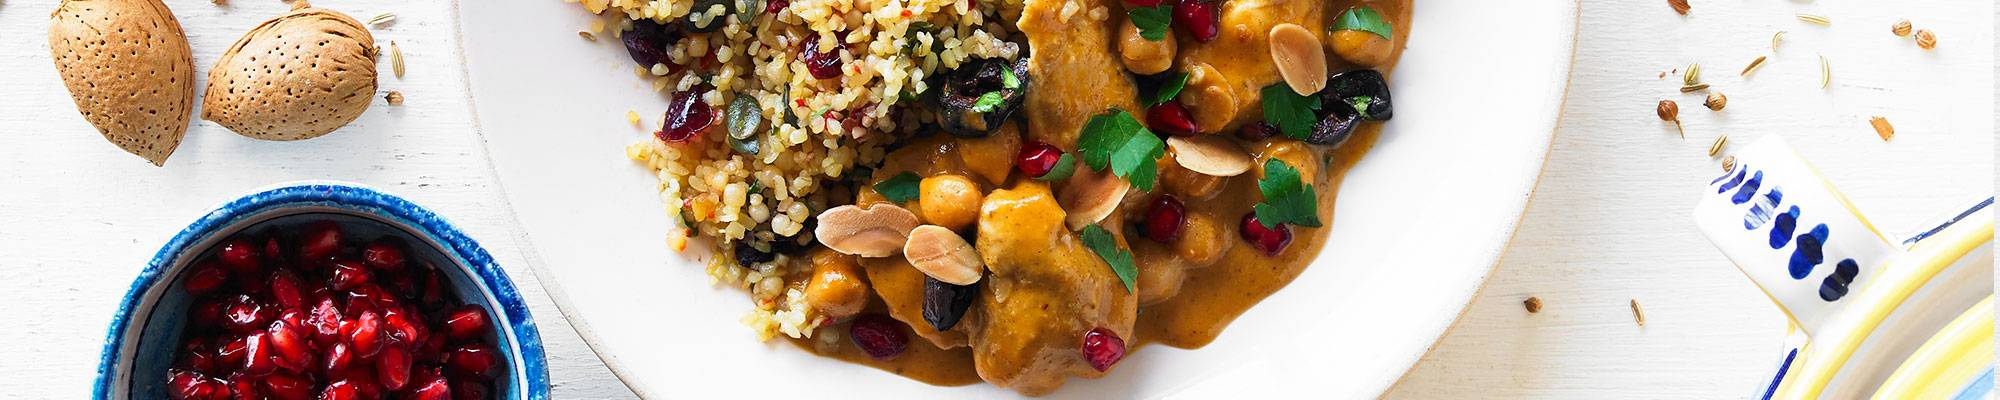 MOROCCAN CHICKEN with olives, almonds & jewelled bulgur wheat